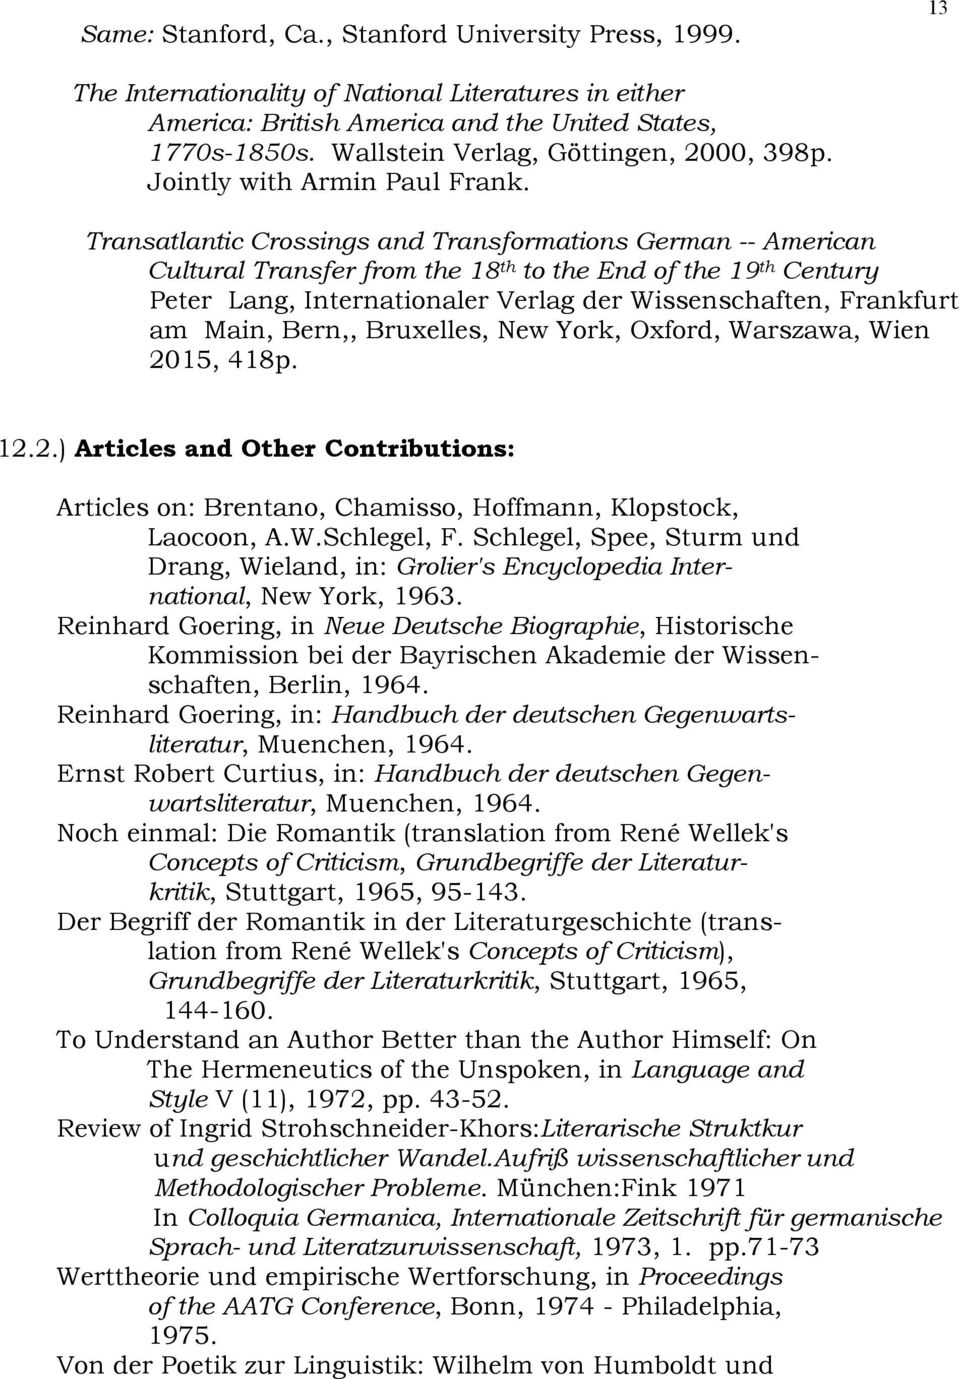 Transatlantic Crossings and Transformations German -- American Cultural Transfer from the 18 th to the End of the 19 th Century Peter Lang, Internationaler Verlag der Wissenschaften, Frankfurt am